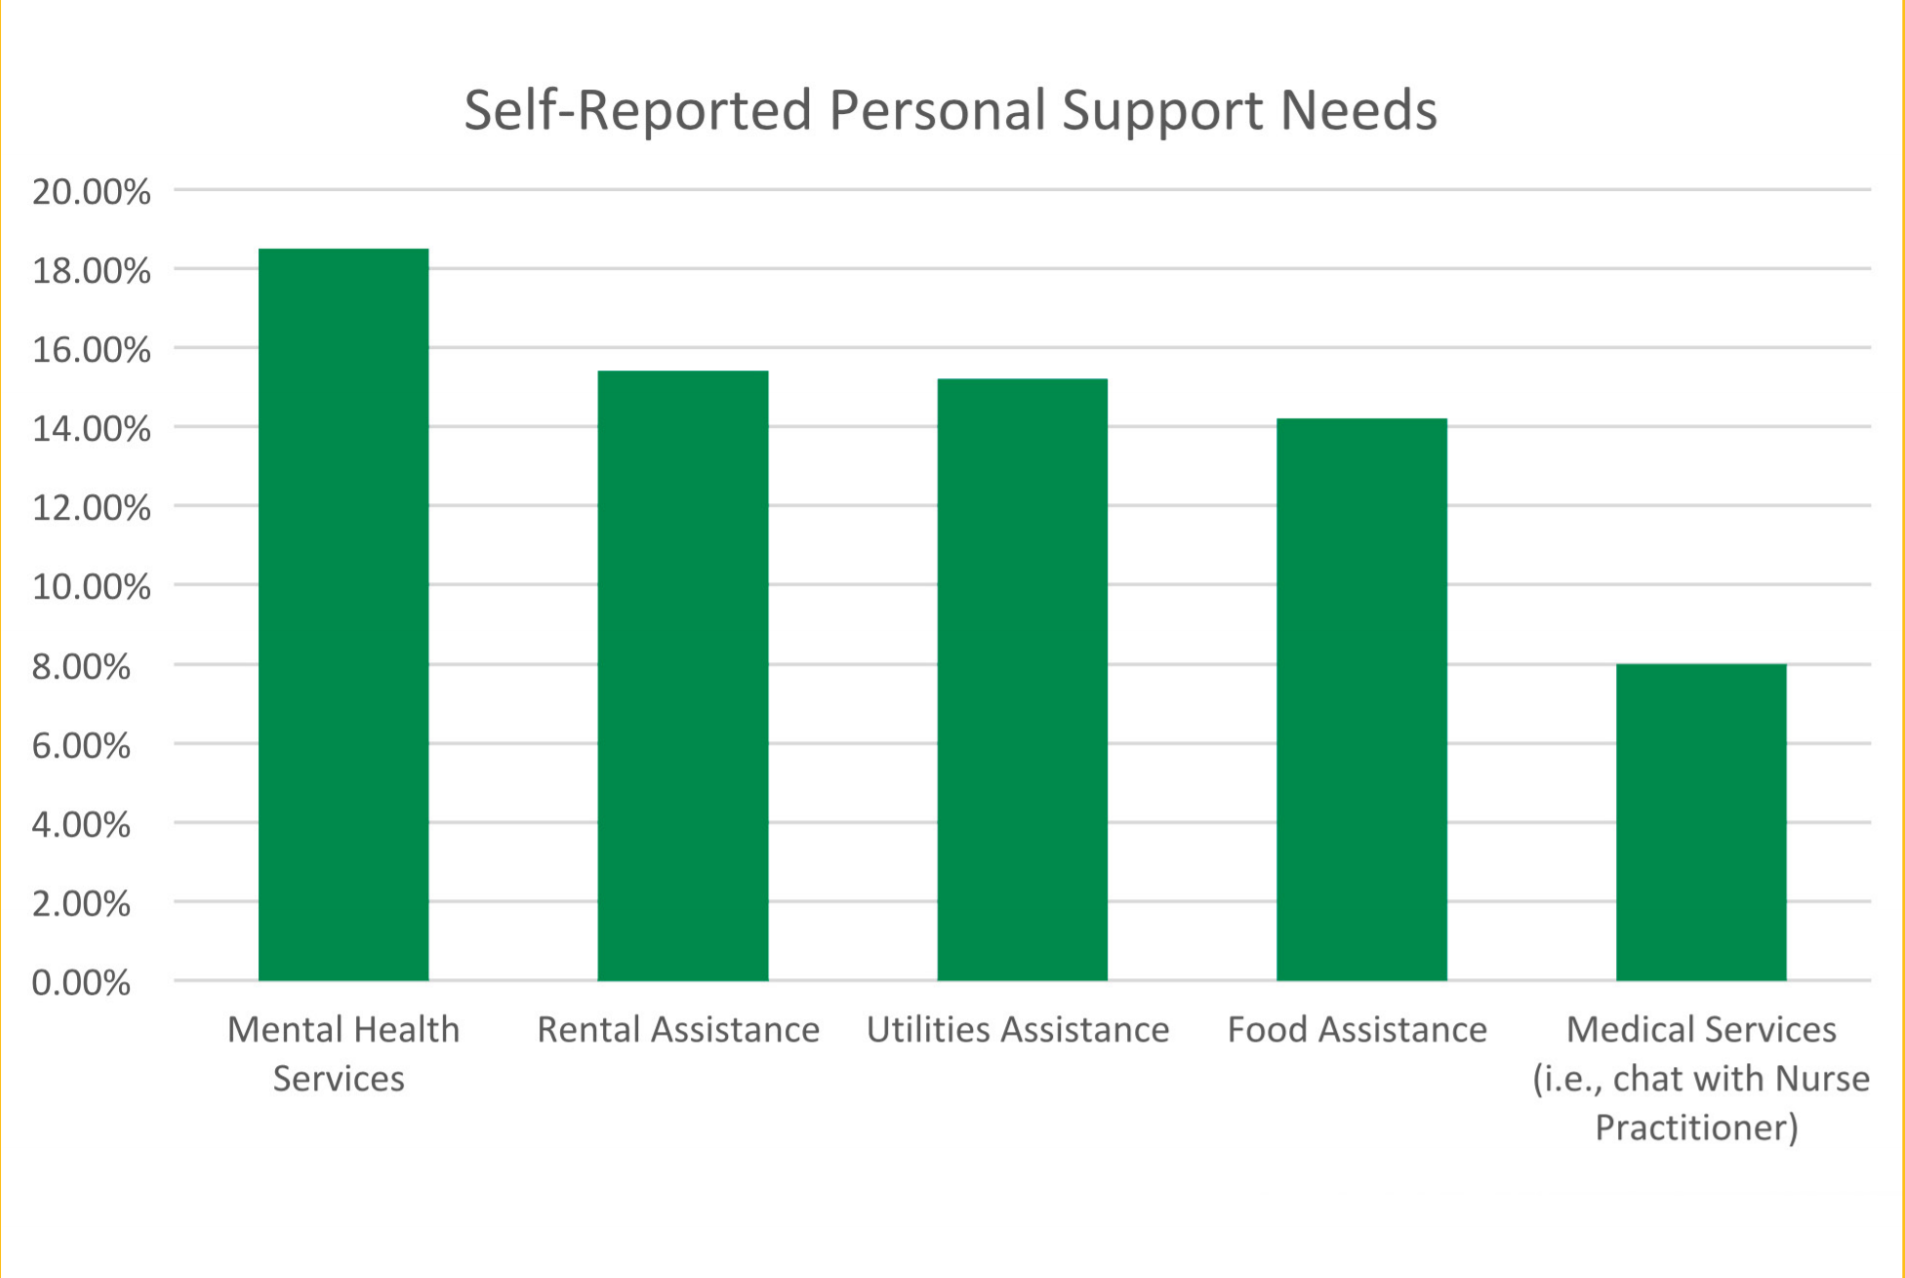 Student Needs Survey Graph showing more than 18% needing Mental Health Services, more than 15% needing Rental Services, more than 15% for Utilities Assistance, more than 14% for Food Assistance, and about 8% for Medical Services (i.e. chat with Nurse Pra)